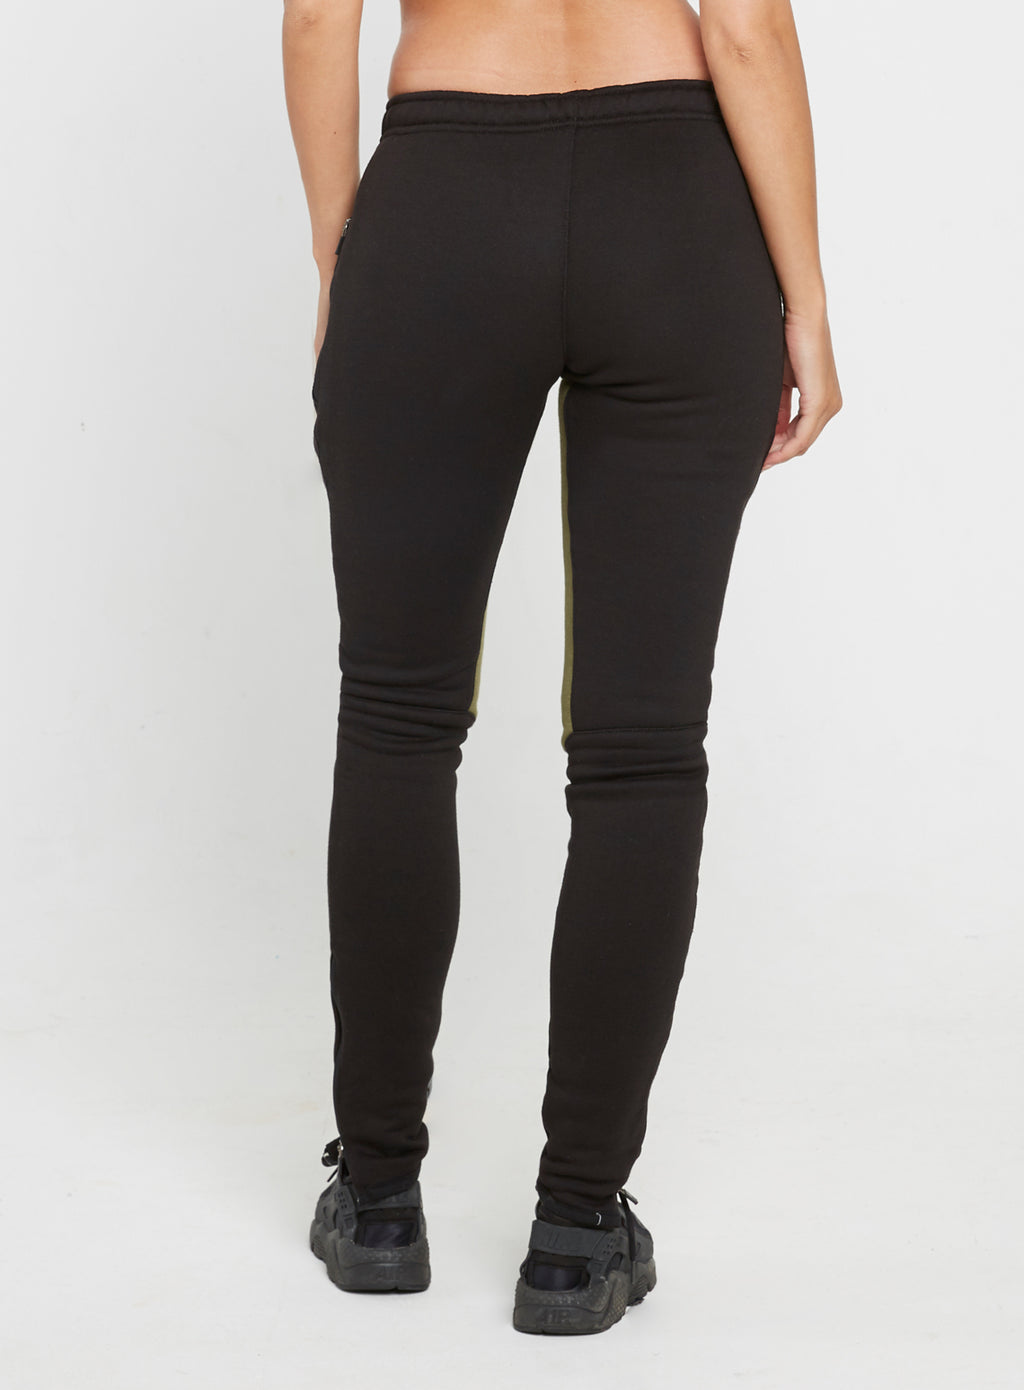 Gym Monkee - Ladies Black and Khaki Joggers REAR